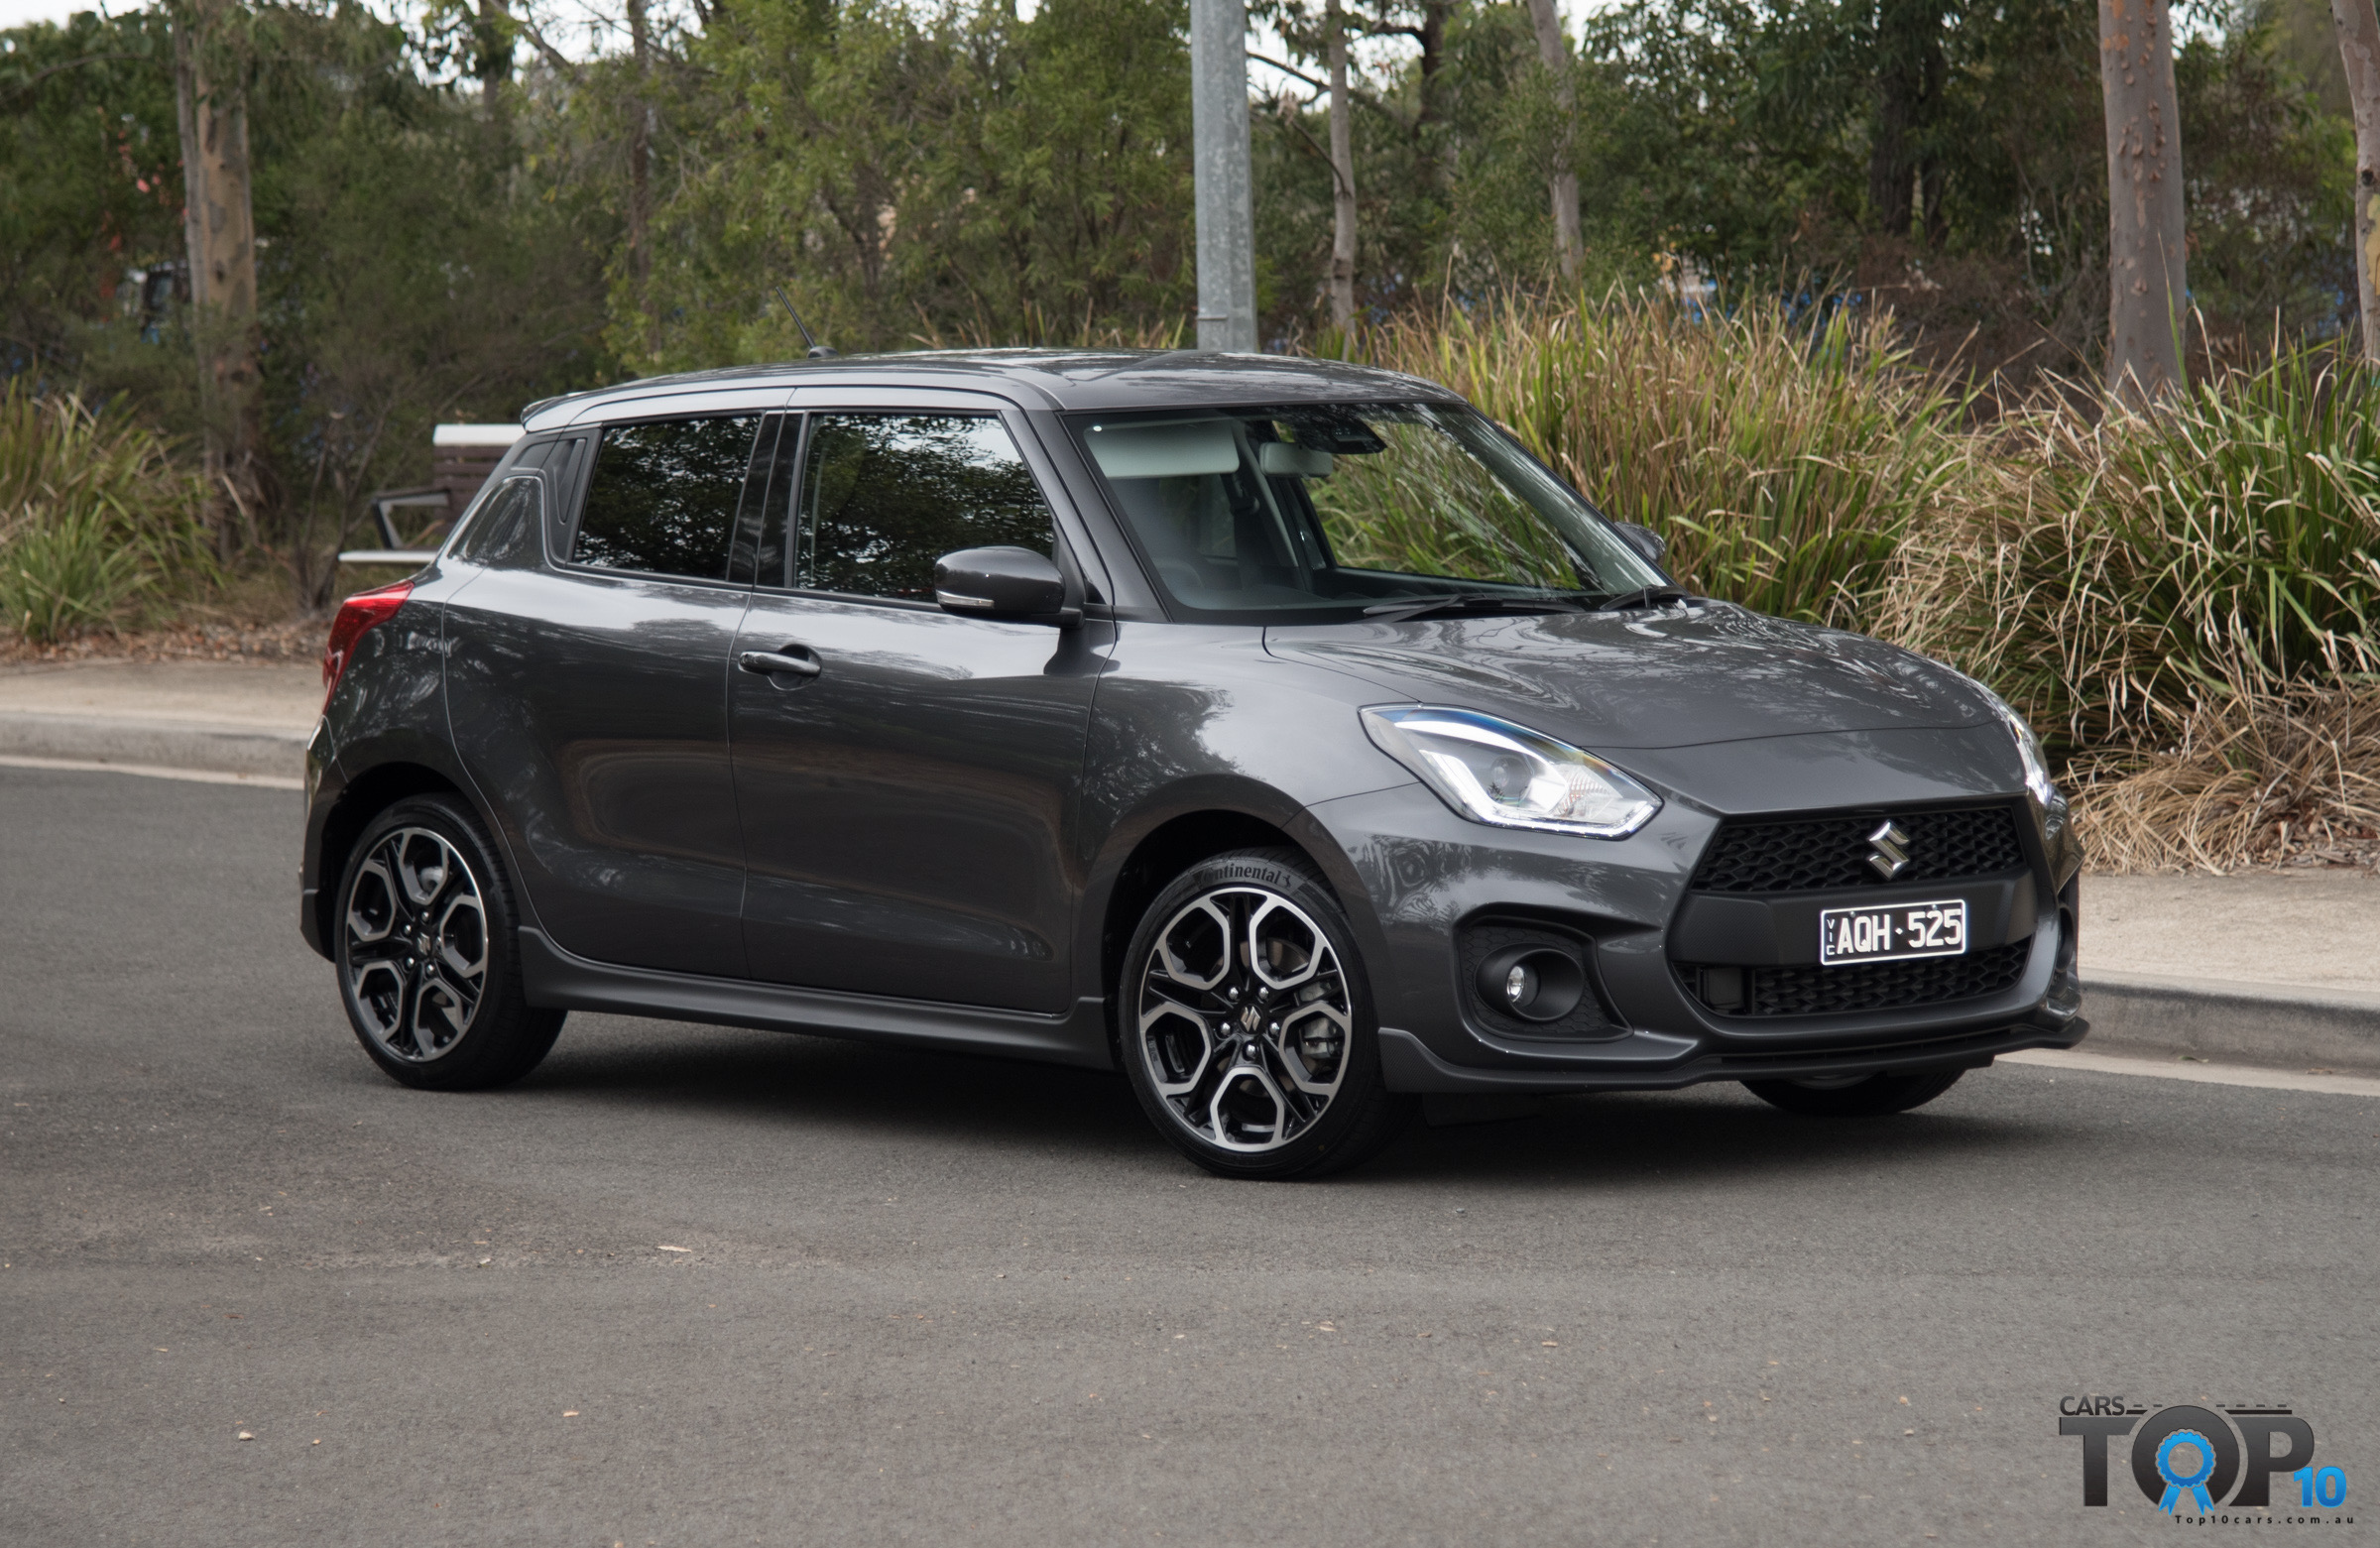 Suzuki Swift Sport Automatic